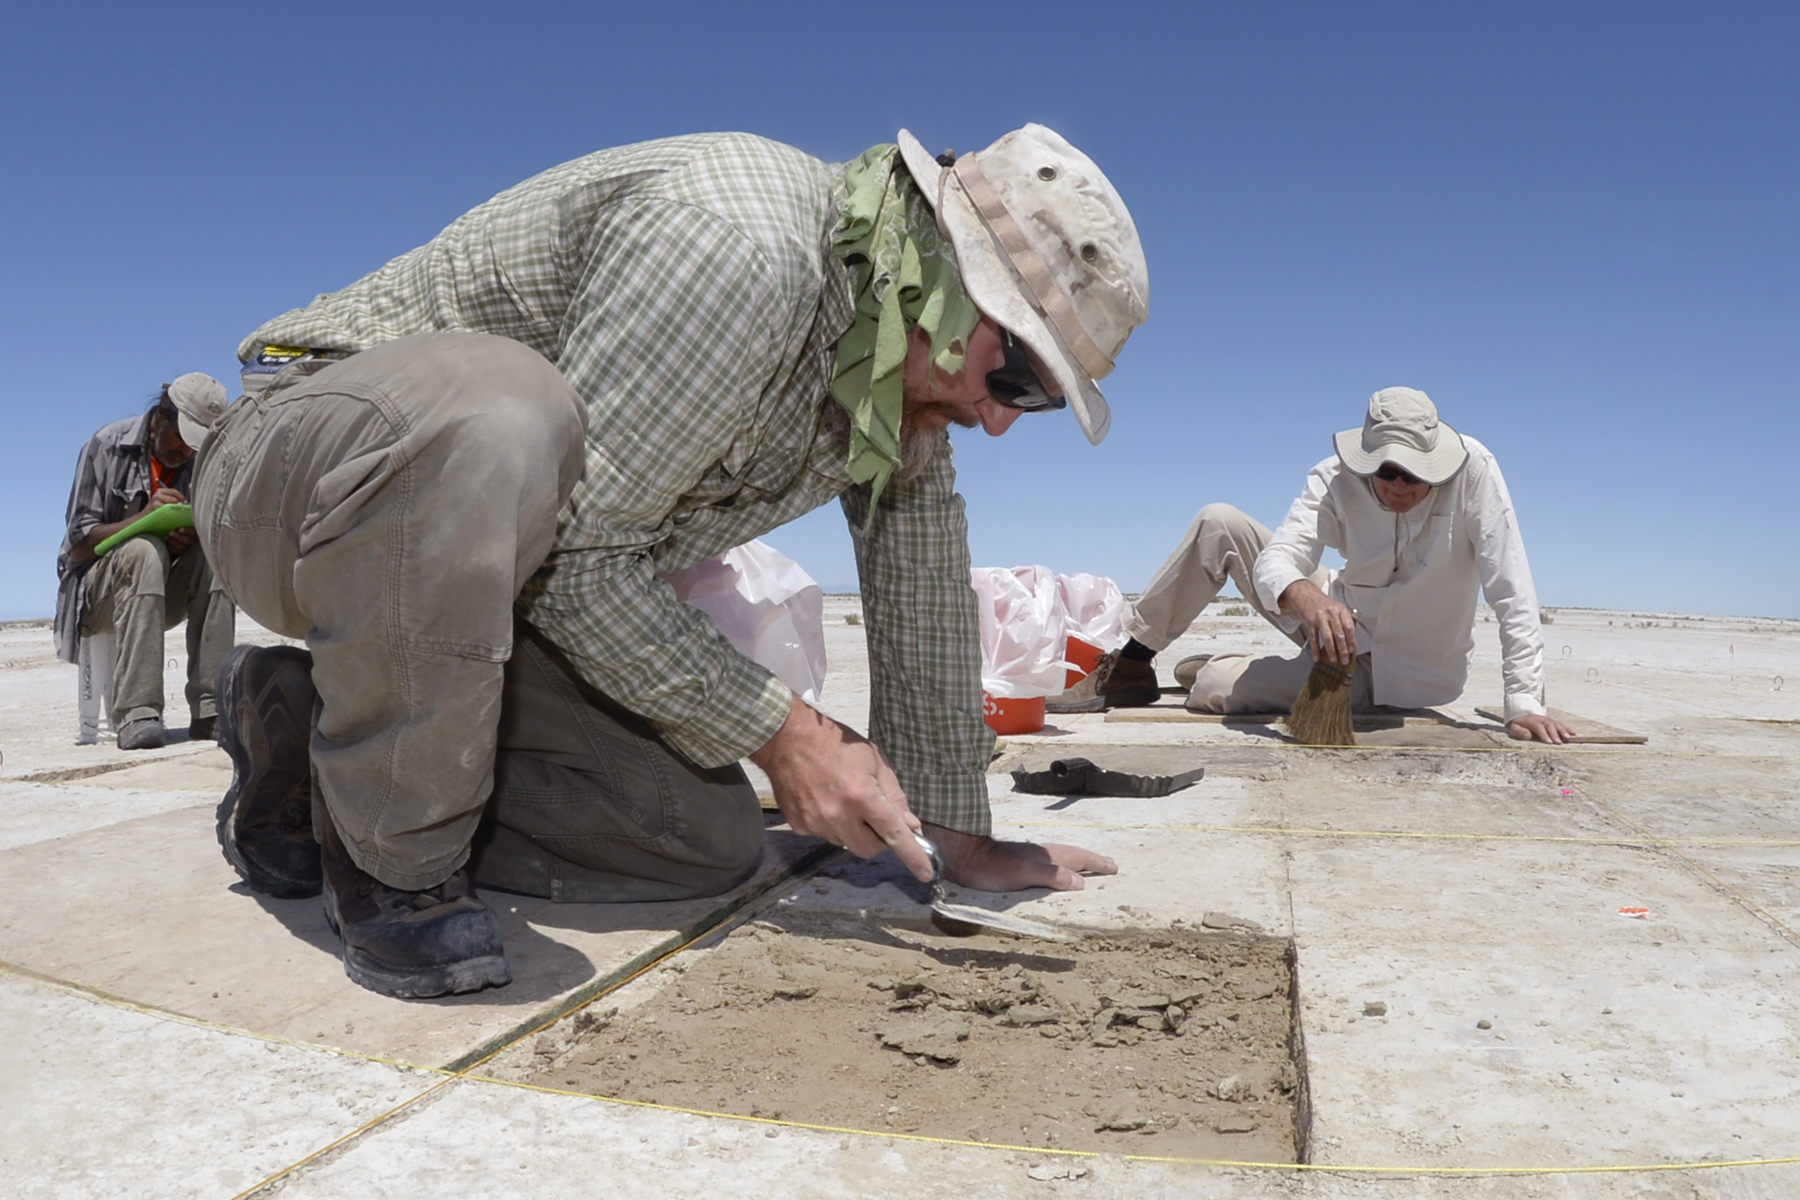 Eric Gingerich, foreground, and Kelly McGuire, both with Far Western Anthropological Research Group, work at a dig site on the Utah Test and Training Range, July 13, 2016. Artifacts found at the site included water fowl bones, seeds, and a large spear tip. | U.S. Air Force photo by Todd Cromar; St. George News